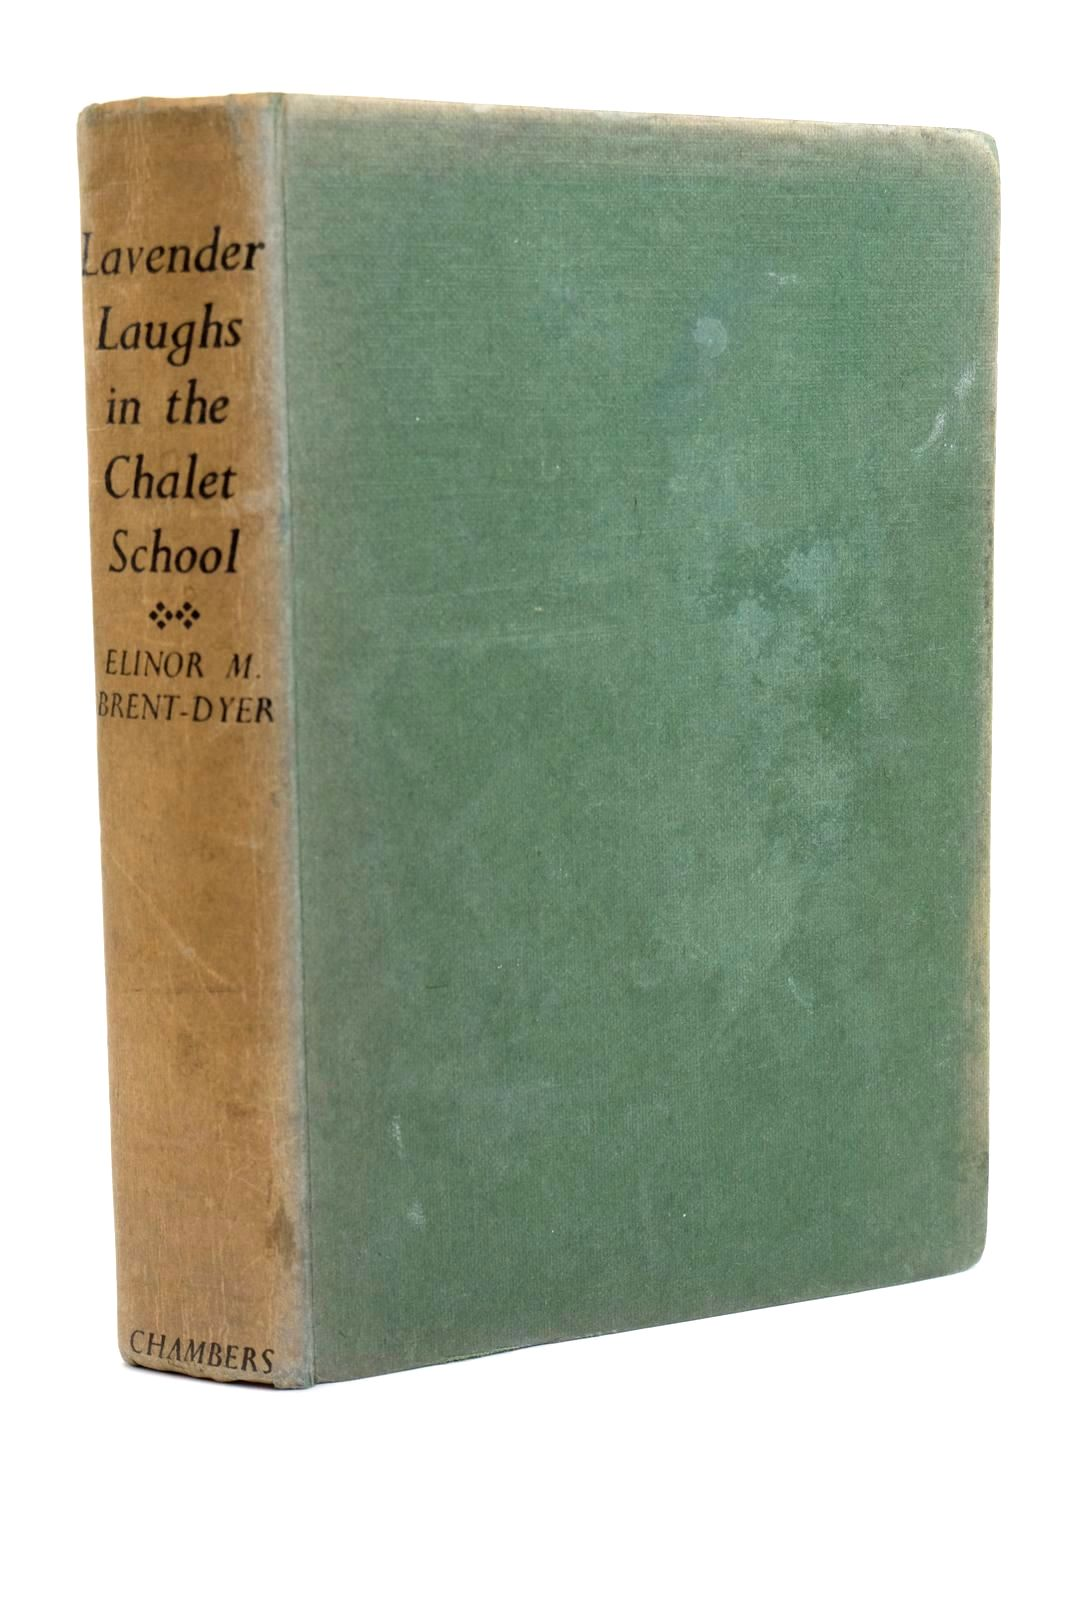 Photo of LAVENDER LAUGHS IN THE CHALET SCHOOL written by Brent-Dyer, Elinor M. published by W. & R. Chambers Limited (STOCK CODE: 1319381)  for sale by Stella & Rose's Books